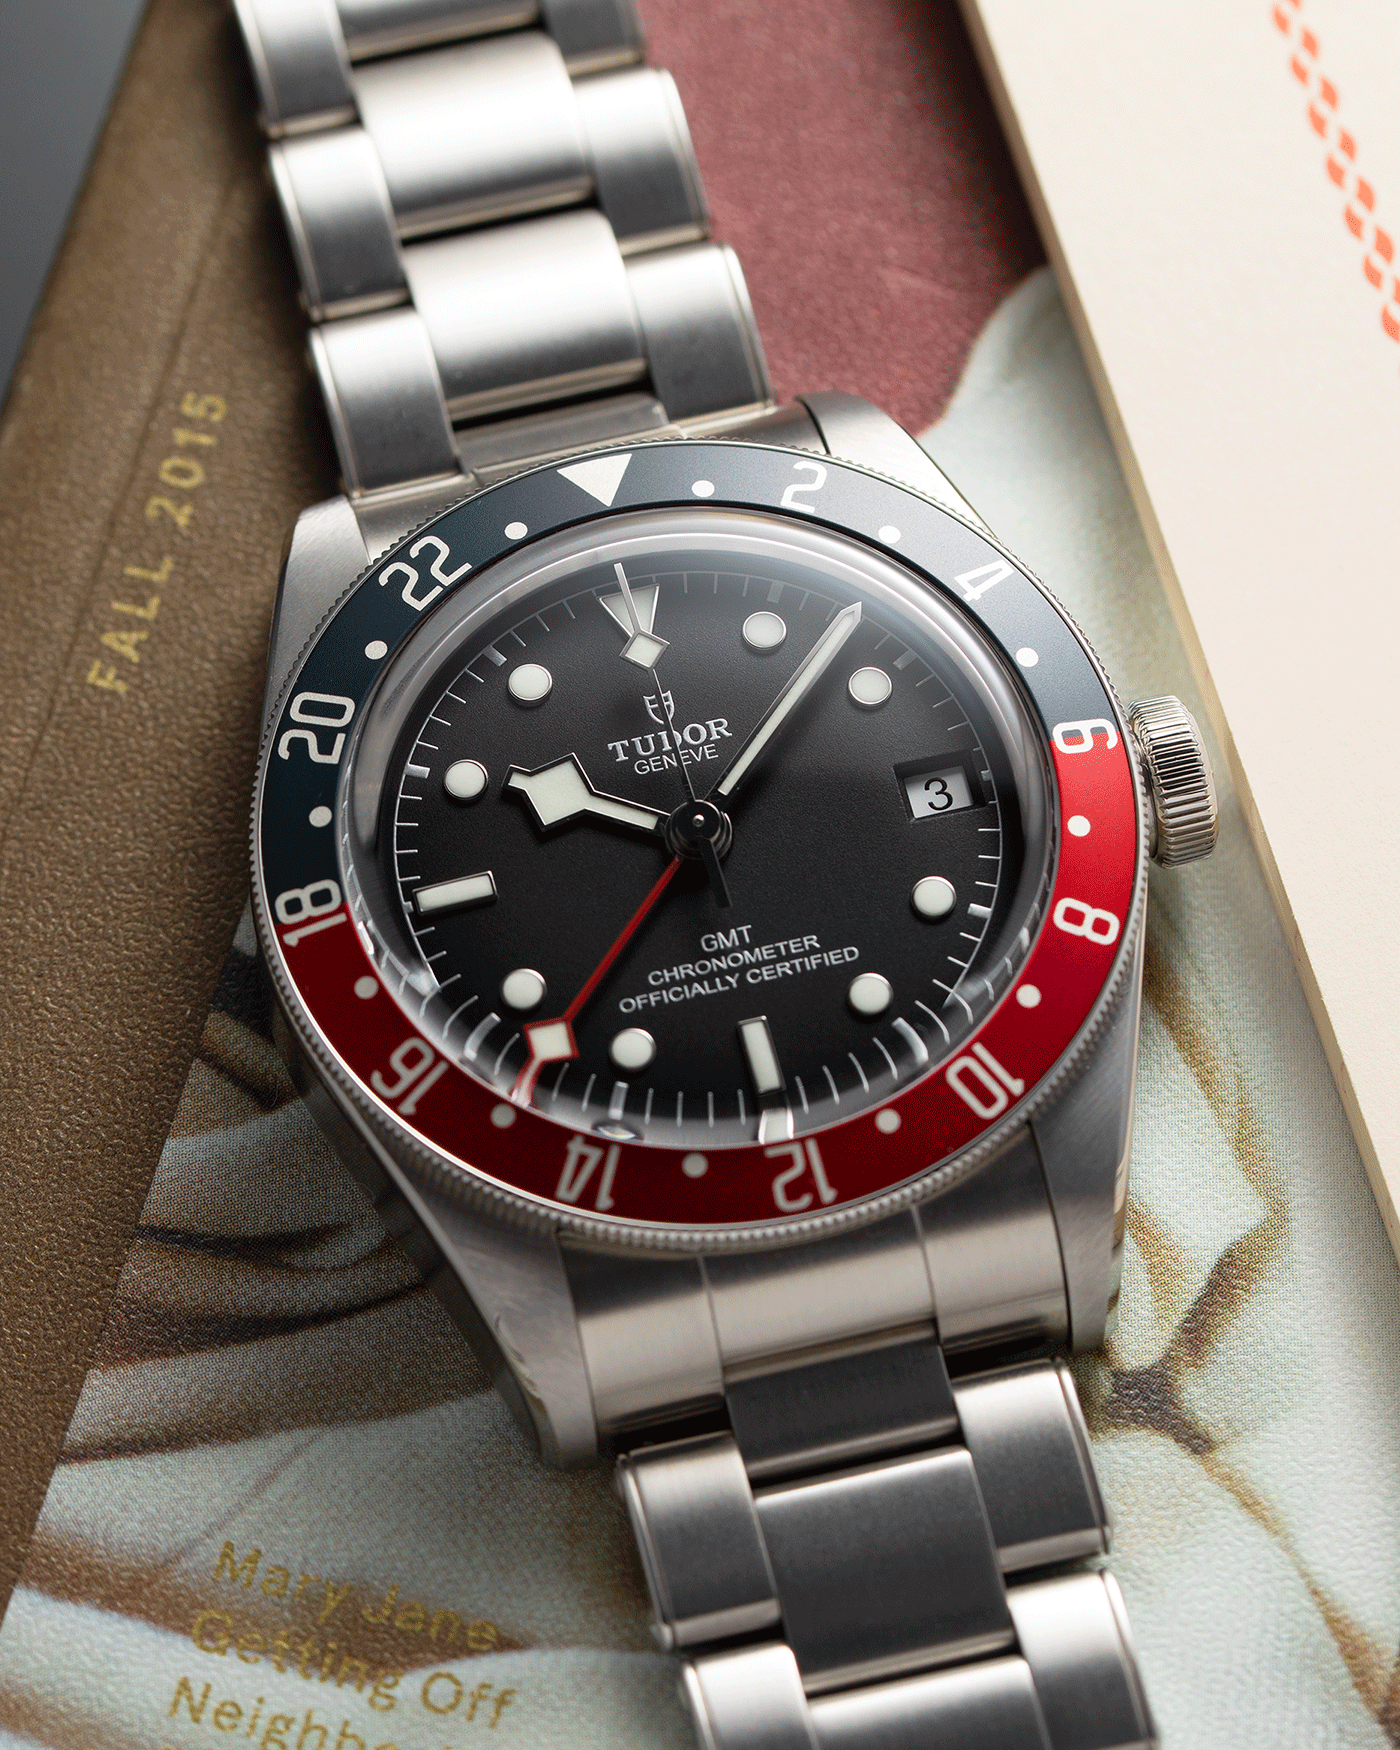 Brand: Tudor Year: 2020 Model: Black Bay GMT Reference Number: 79830RB Material: Stainless Steel Movement: Cal. MT5652 Case Diameter: 41mm Bracelet: Stainless Steel Tudor Bracelet